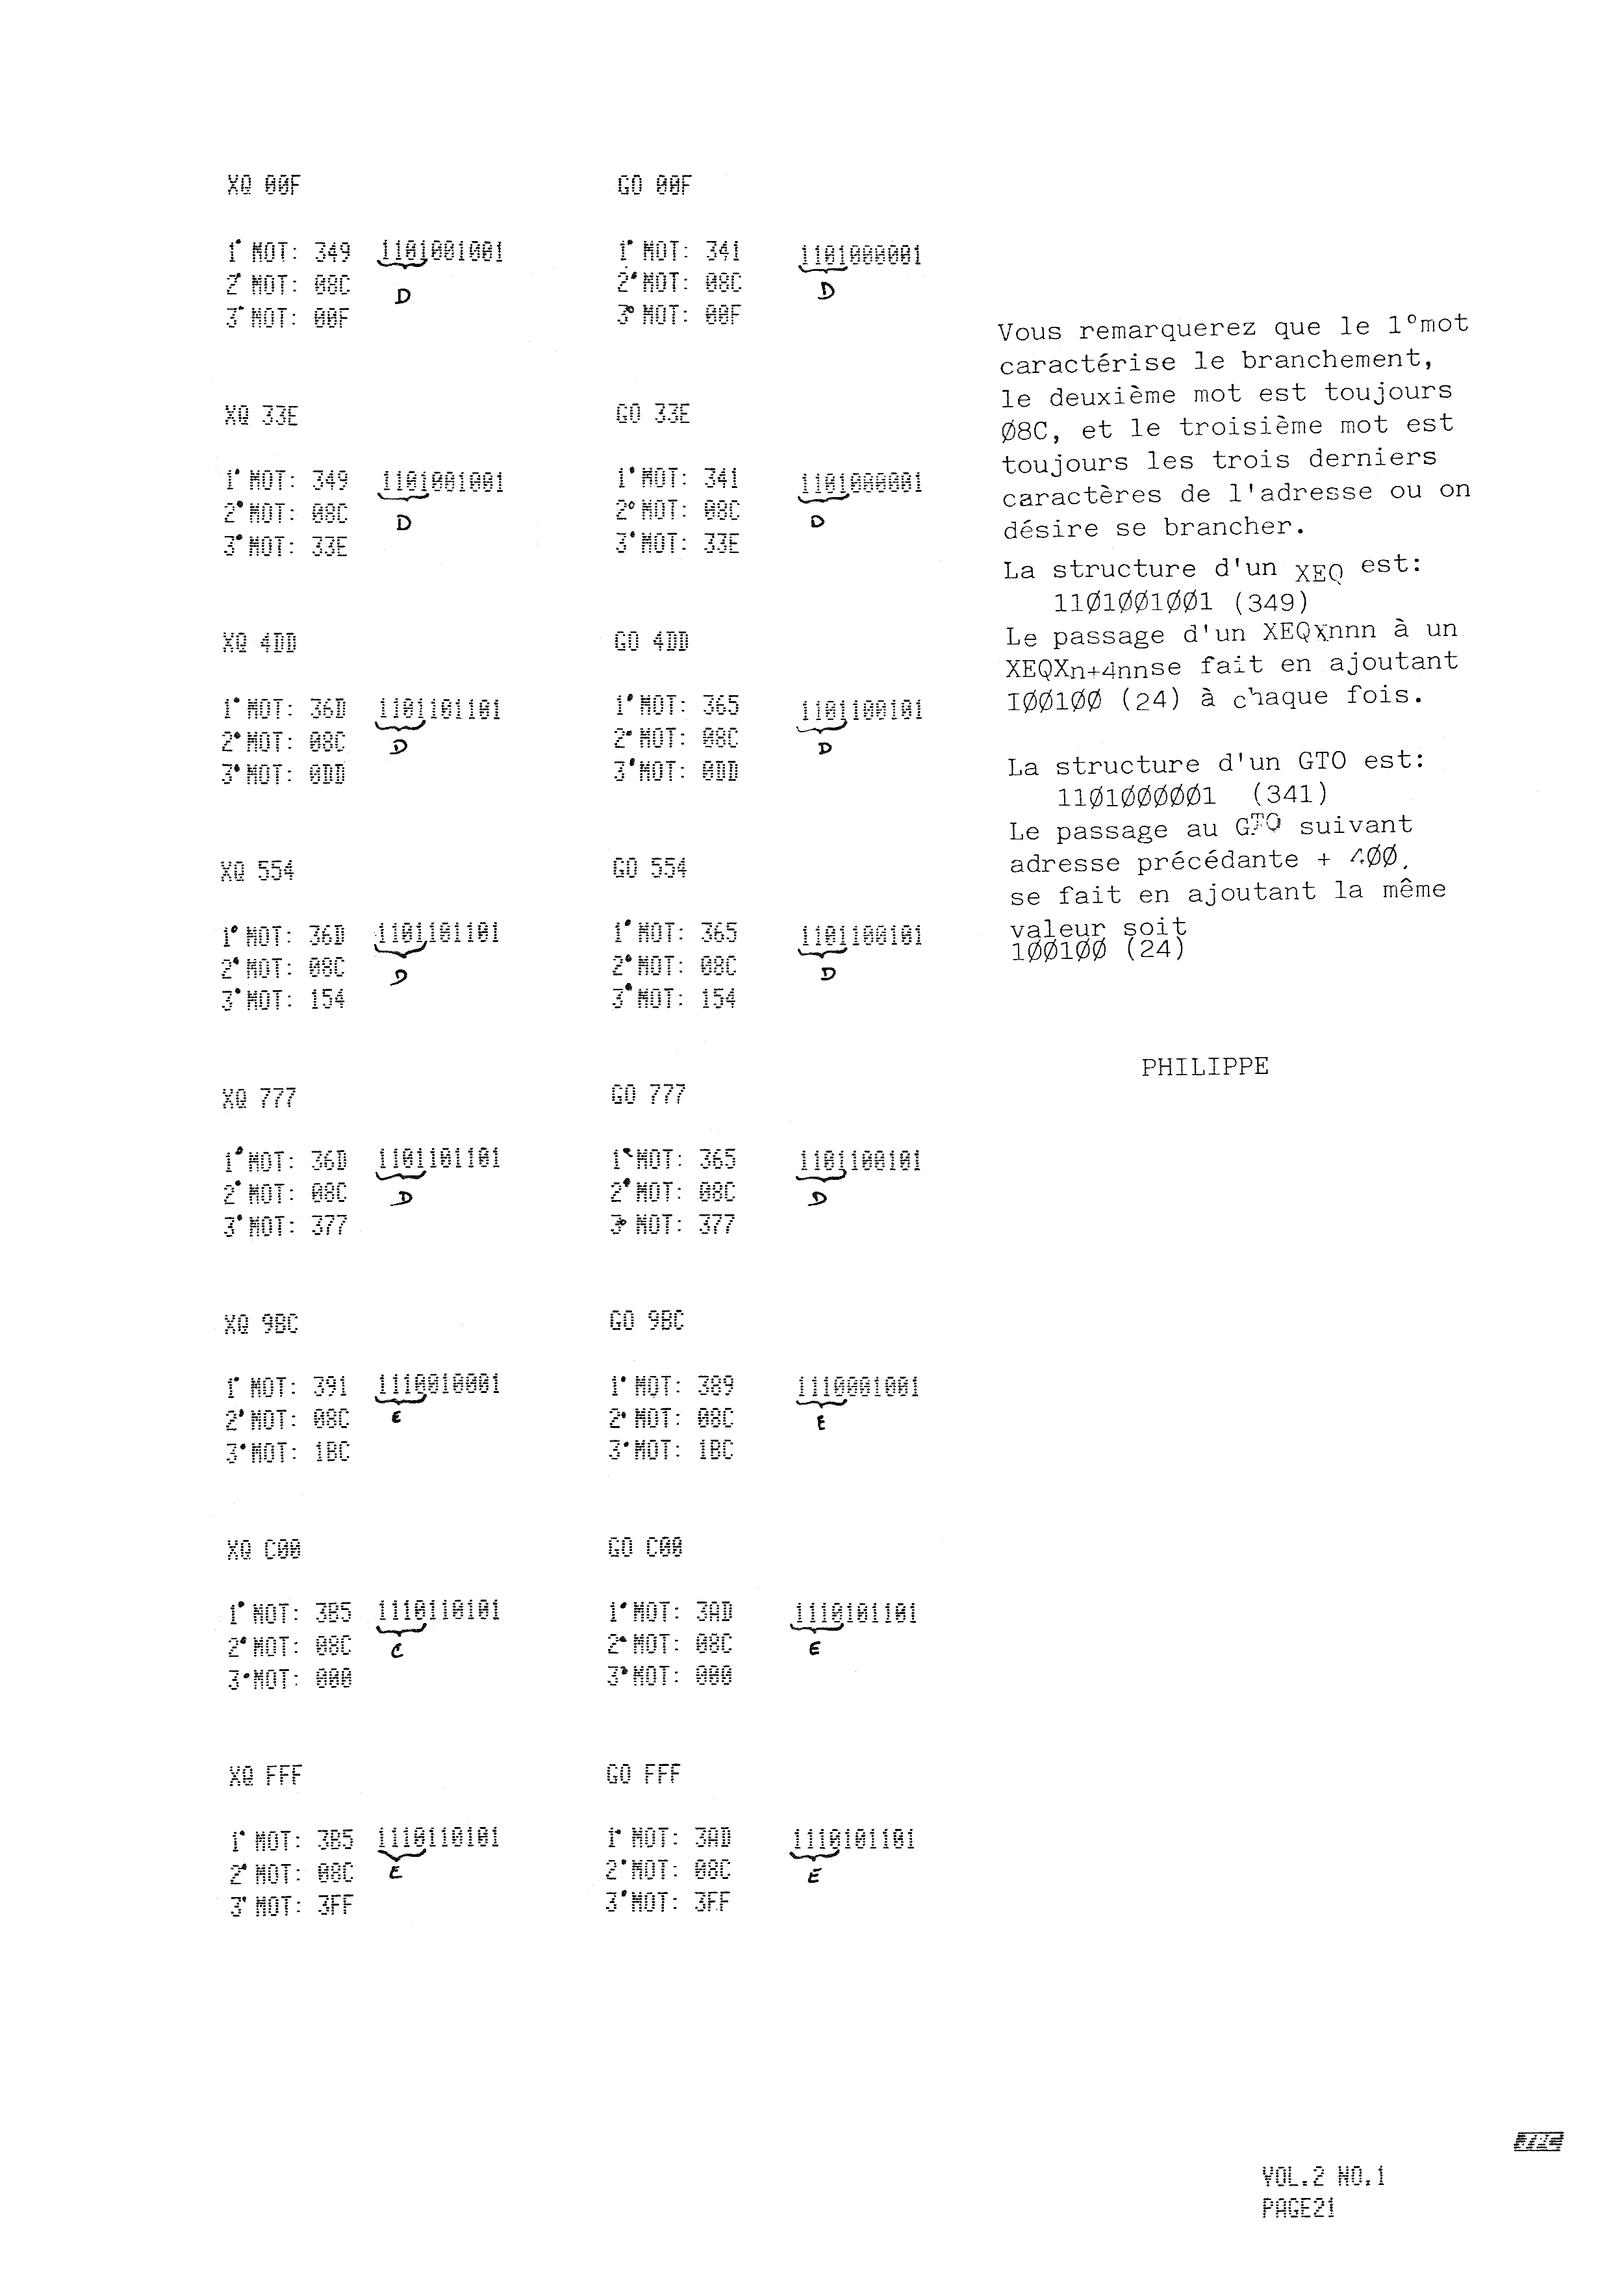 Jp-11-page-22-1000